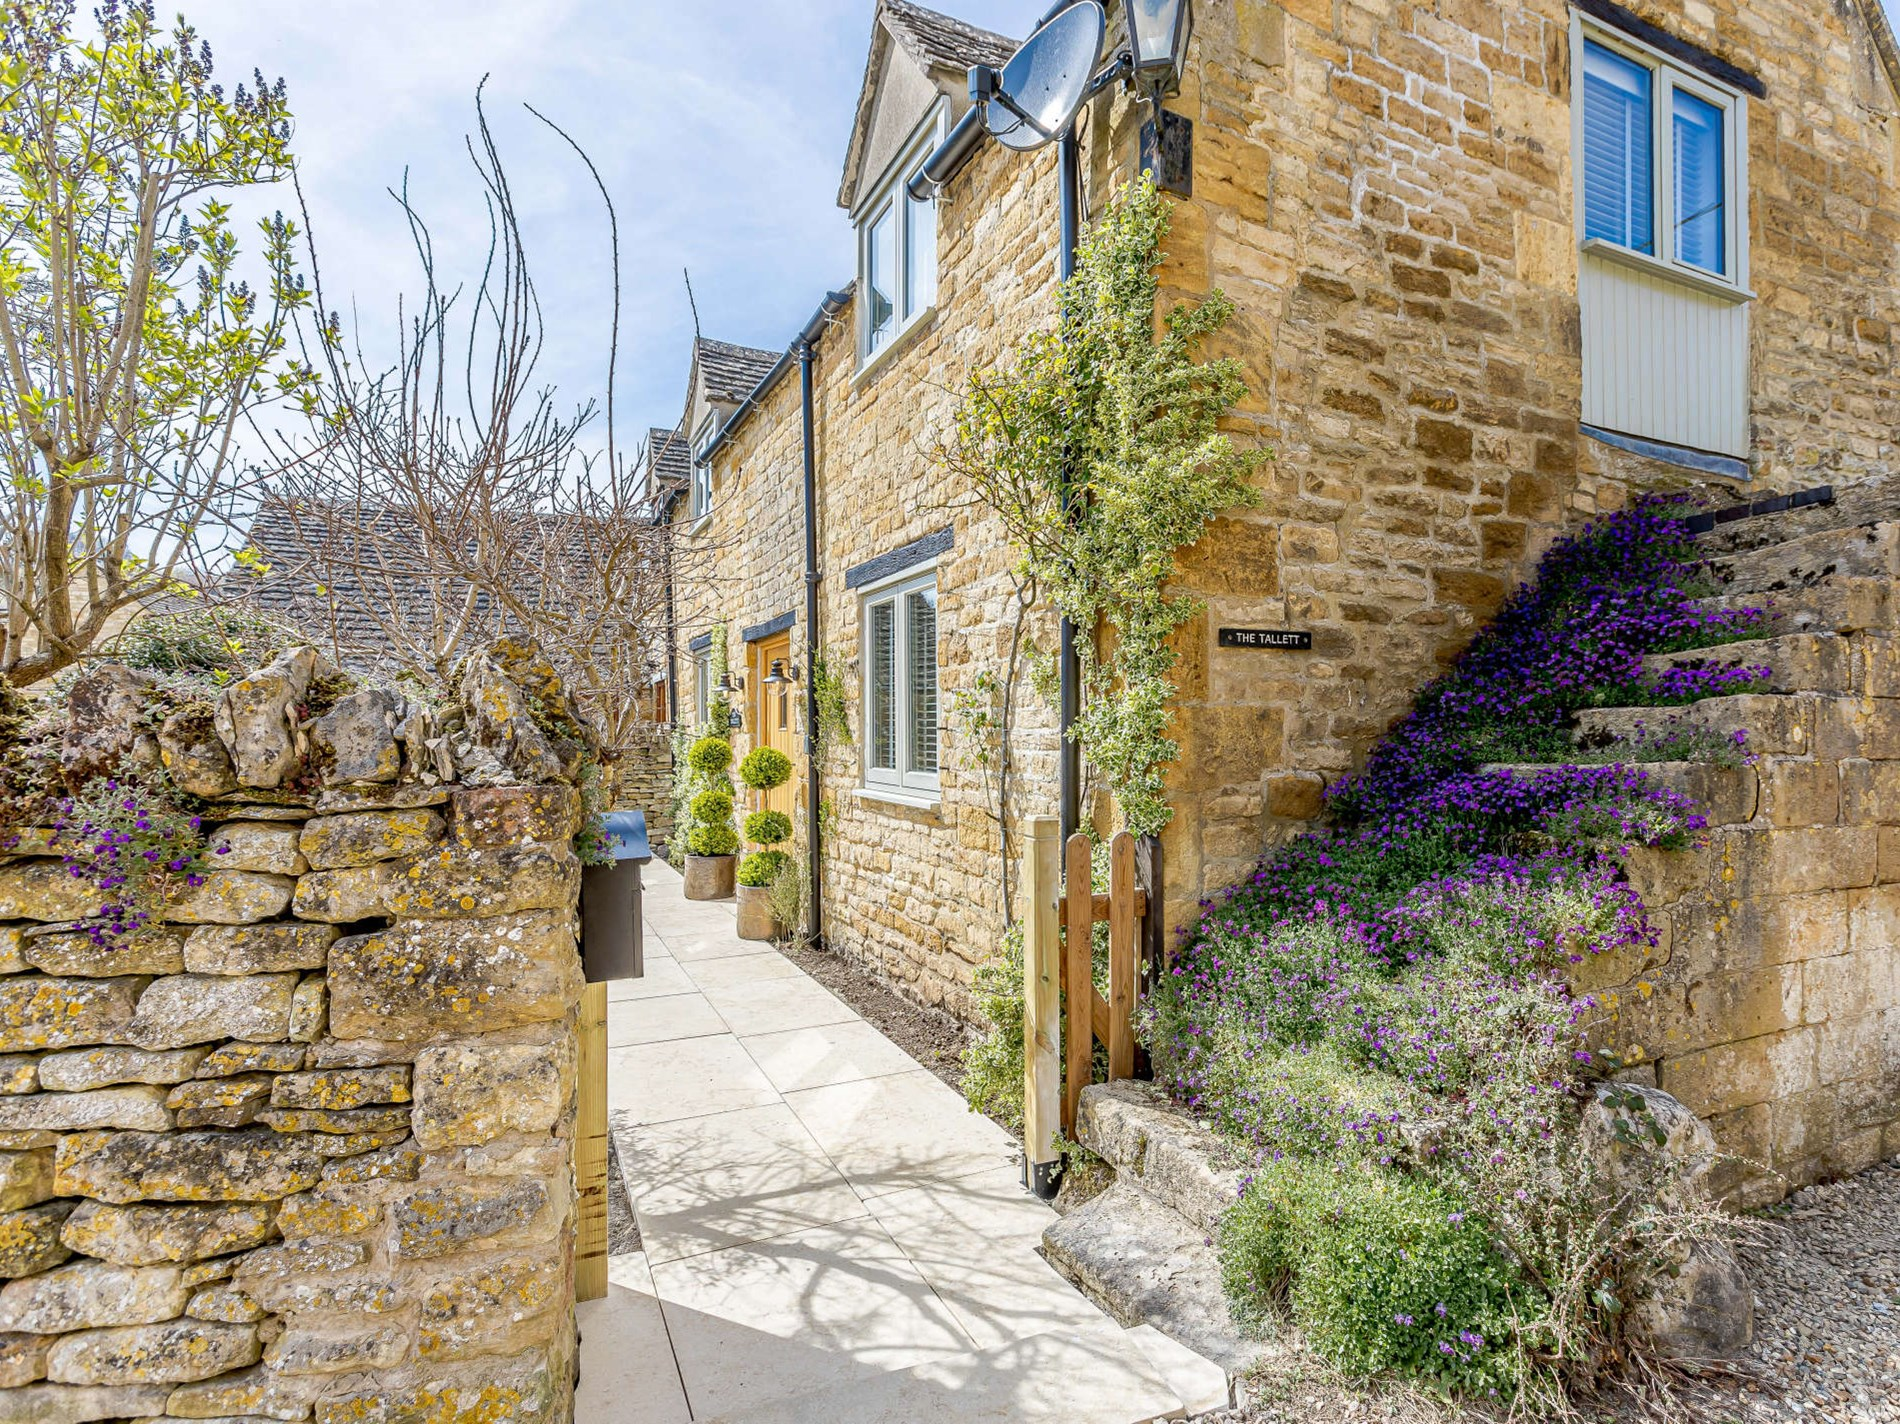 Feriencottage in Stow-on-the-Wold